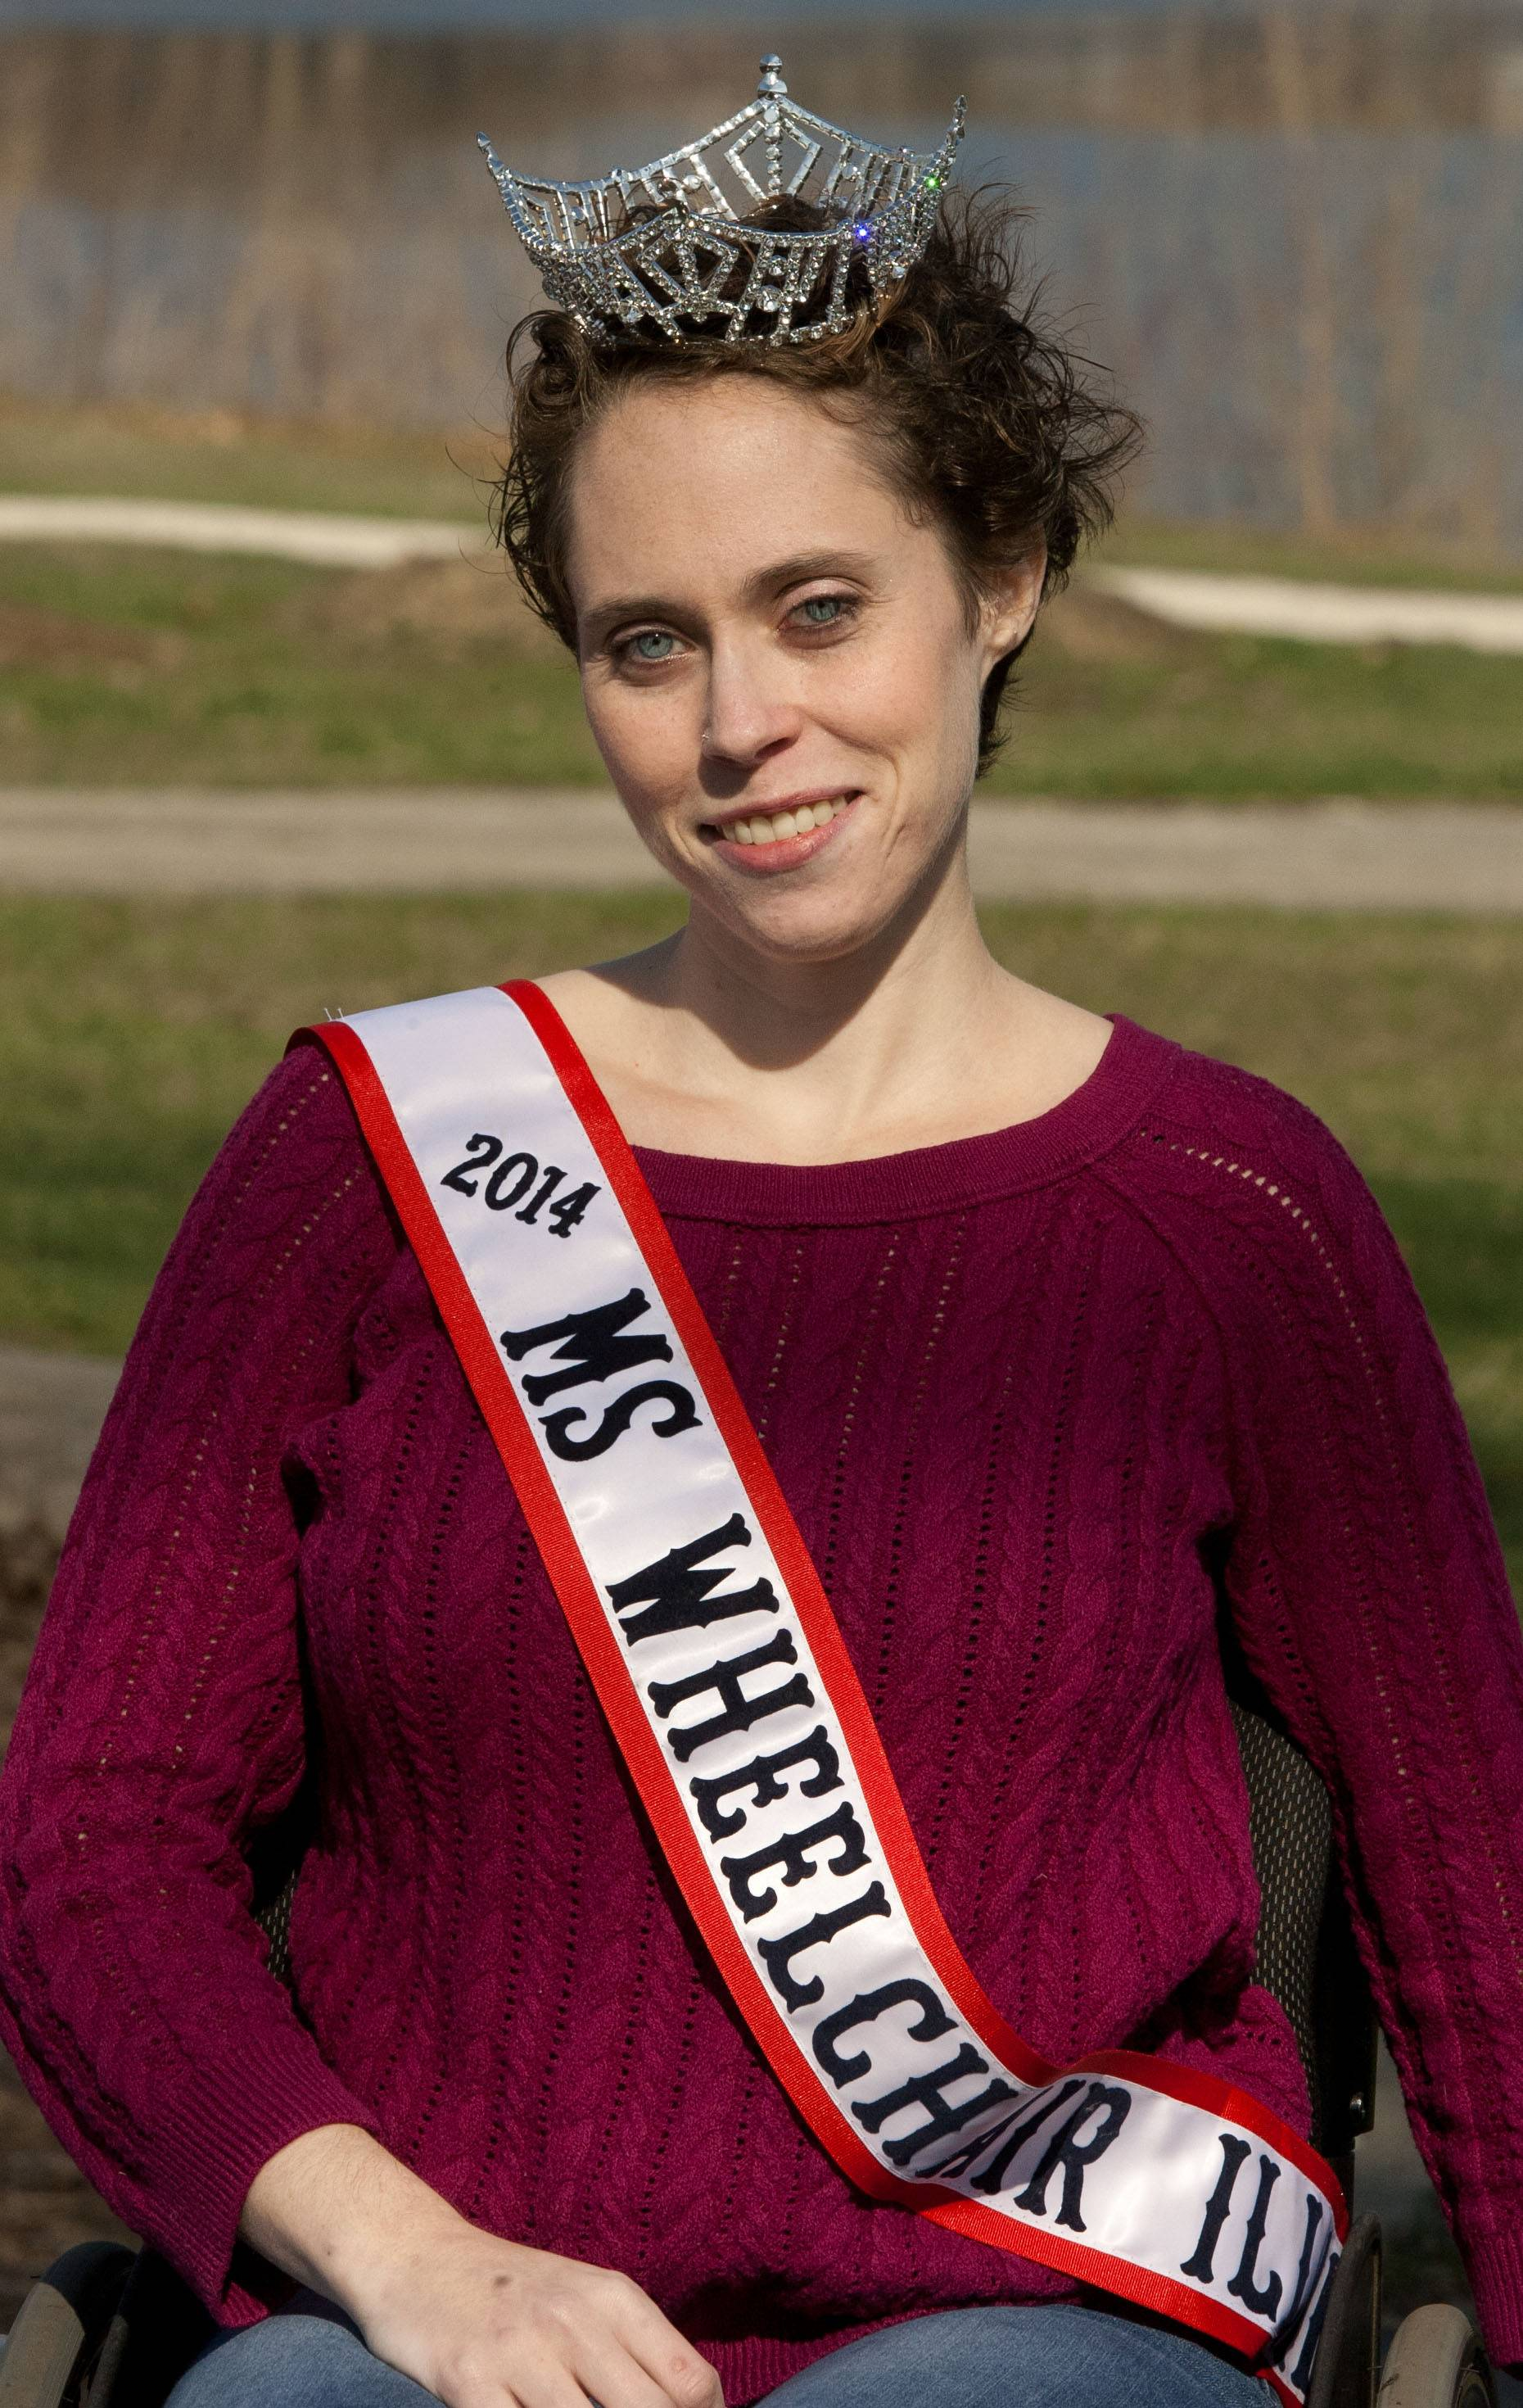 Pearl Gannon, a Lombard native, recently was named Ms. Wheelchair Illinois. The 27-year-old hopes to raise awareness about mental health for the disabled population.